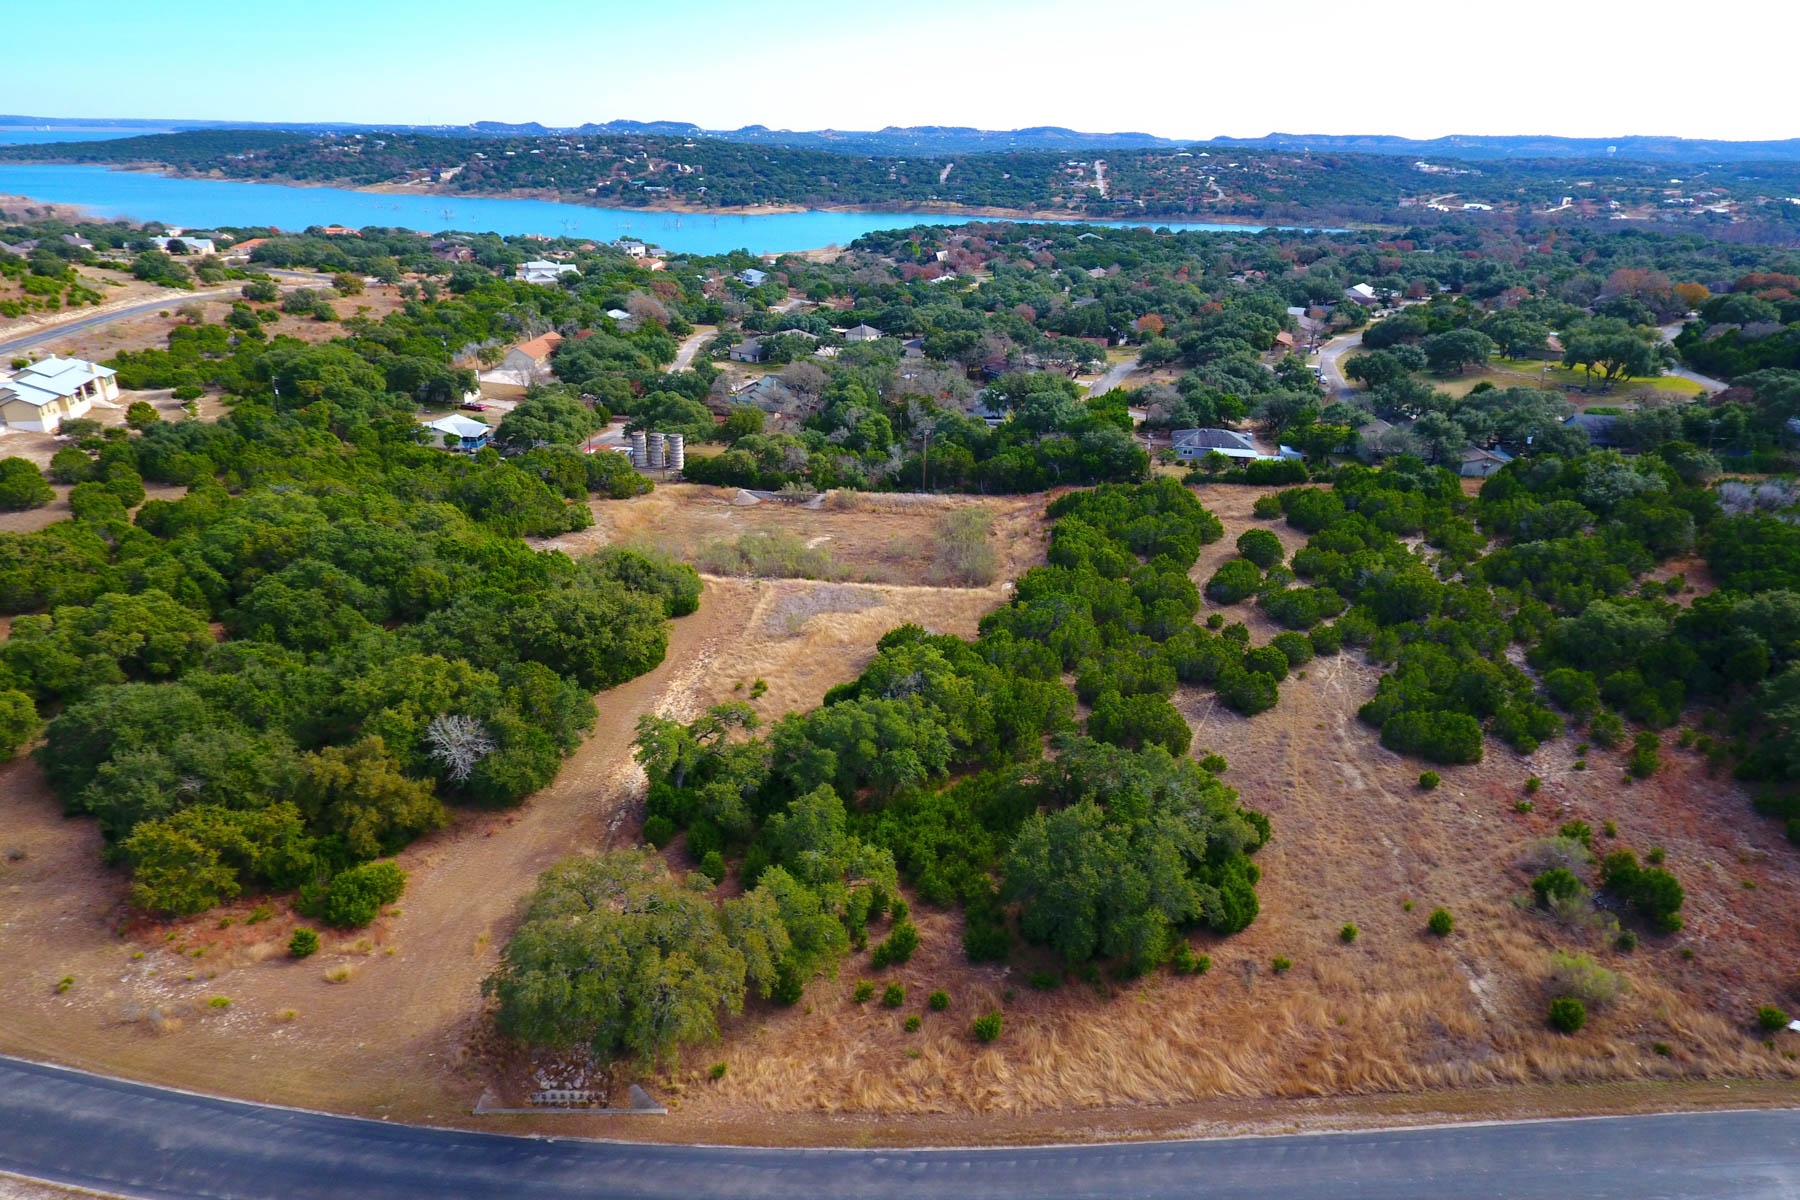 Land for Sale at Perfect Lot to Build a Dream Home 1334 Ensenada Dr Canyon Lake, Texas 78133 United States